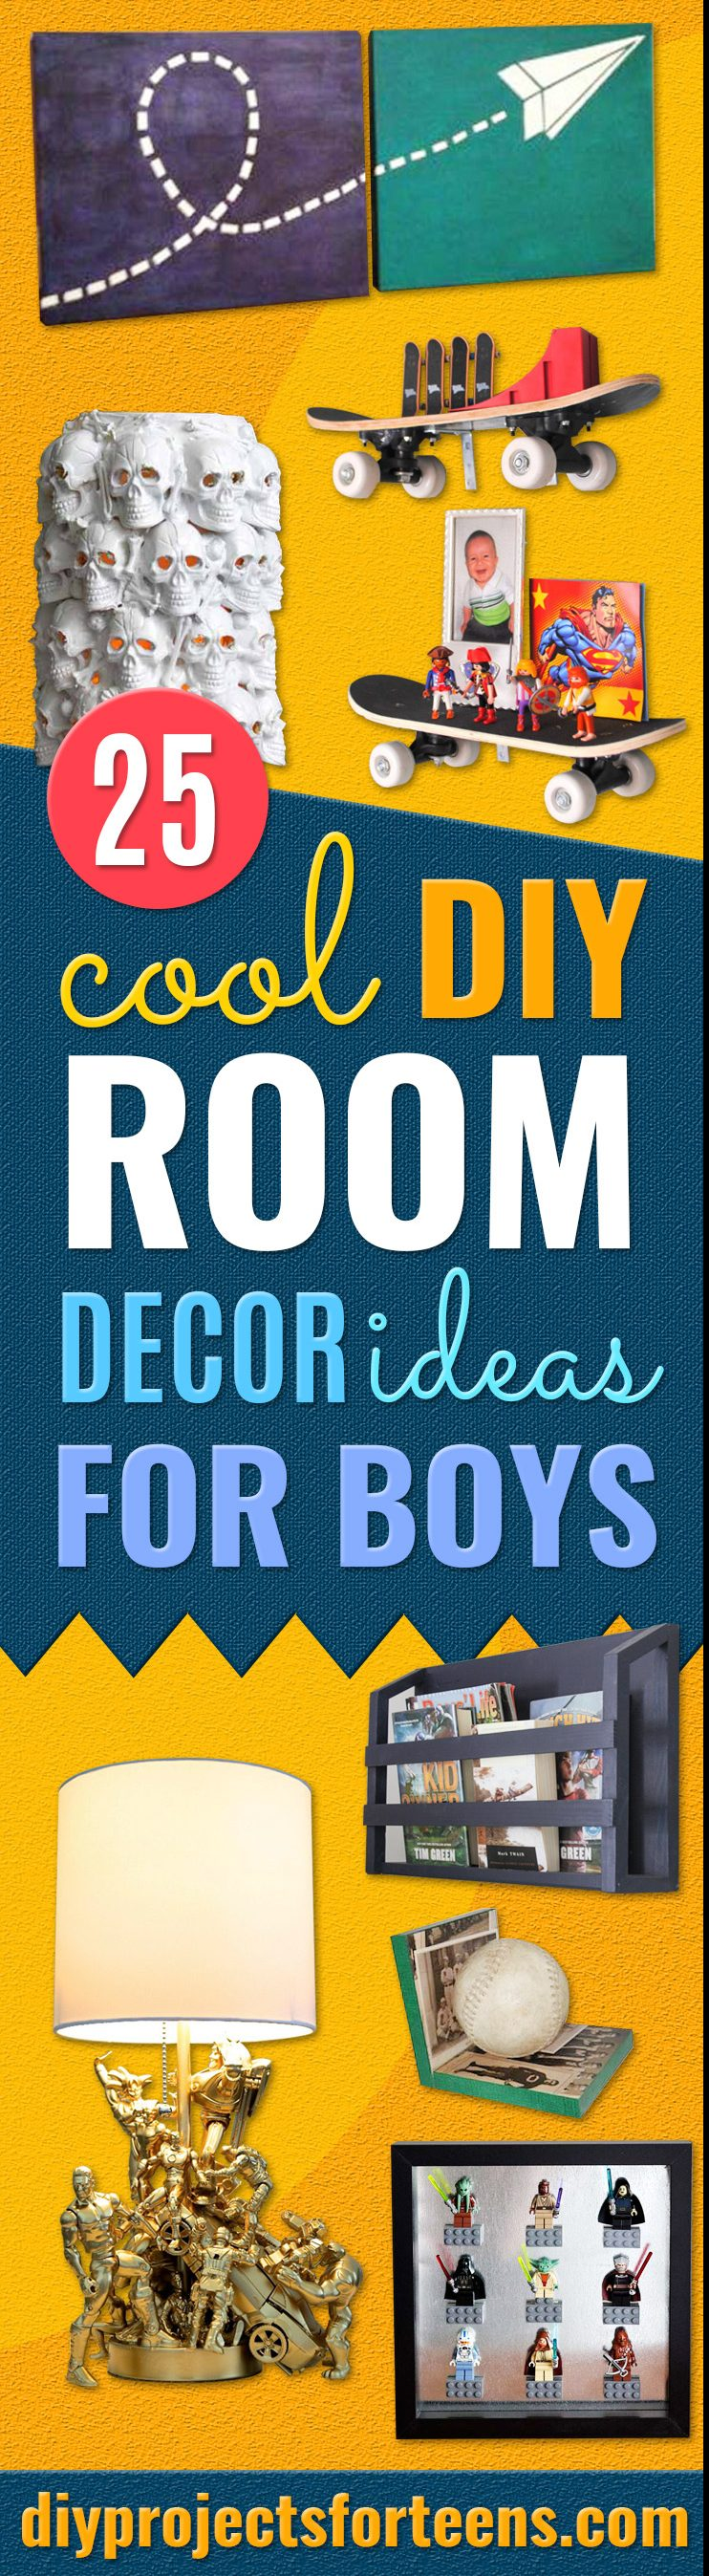 Diy Room Decor For Boys Diy Projects For Teens